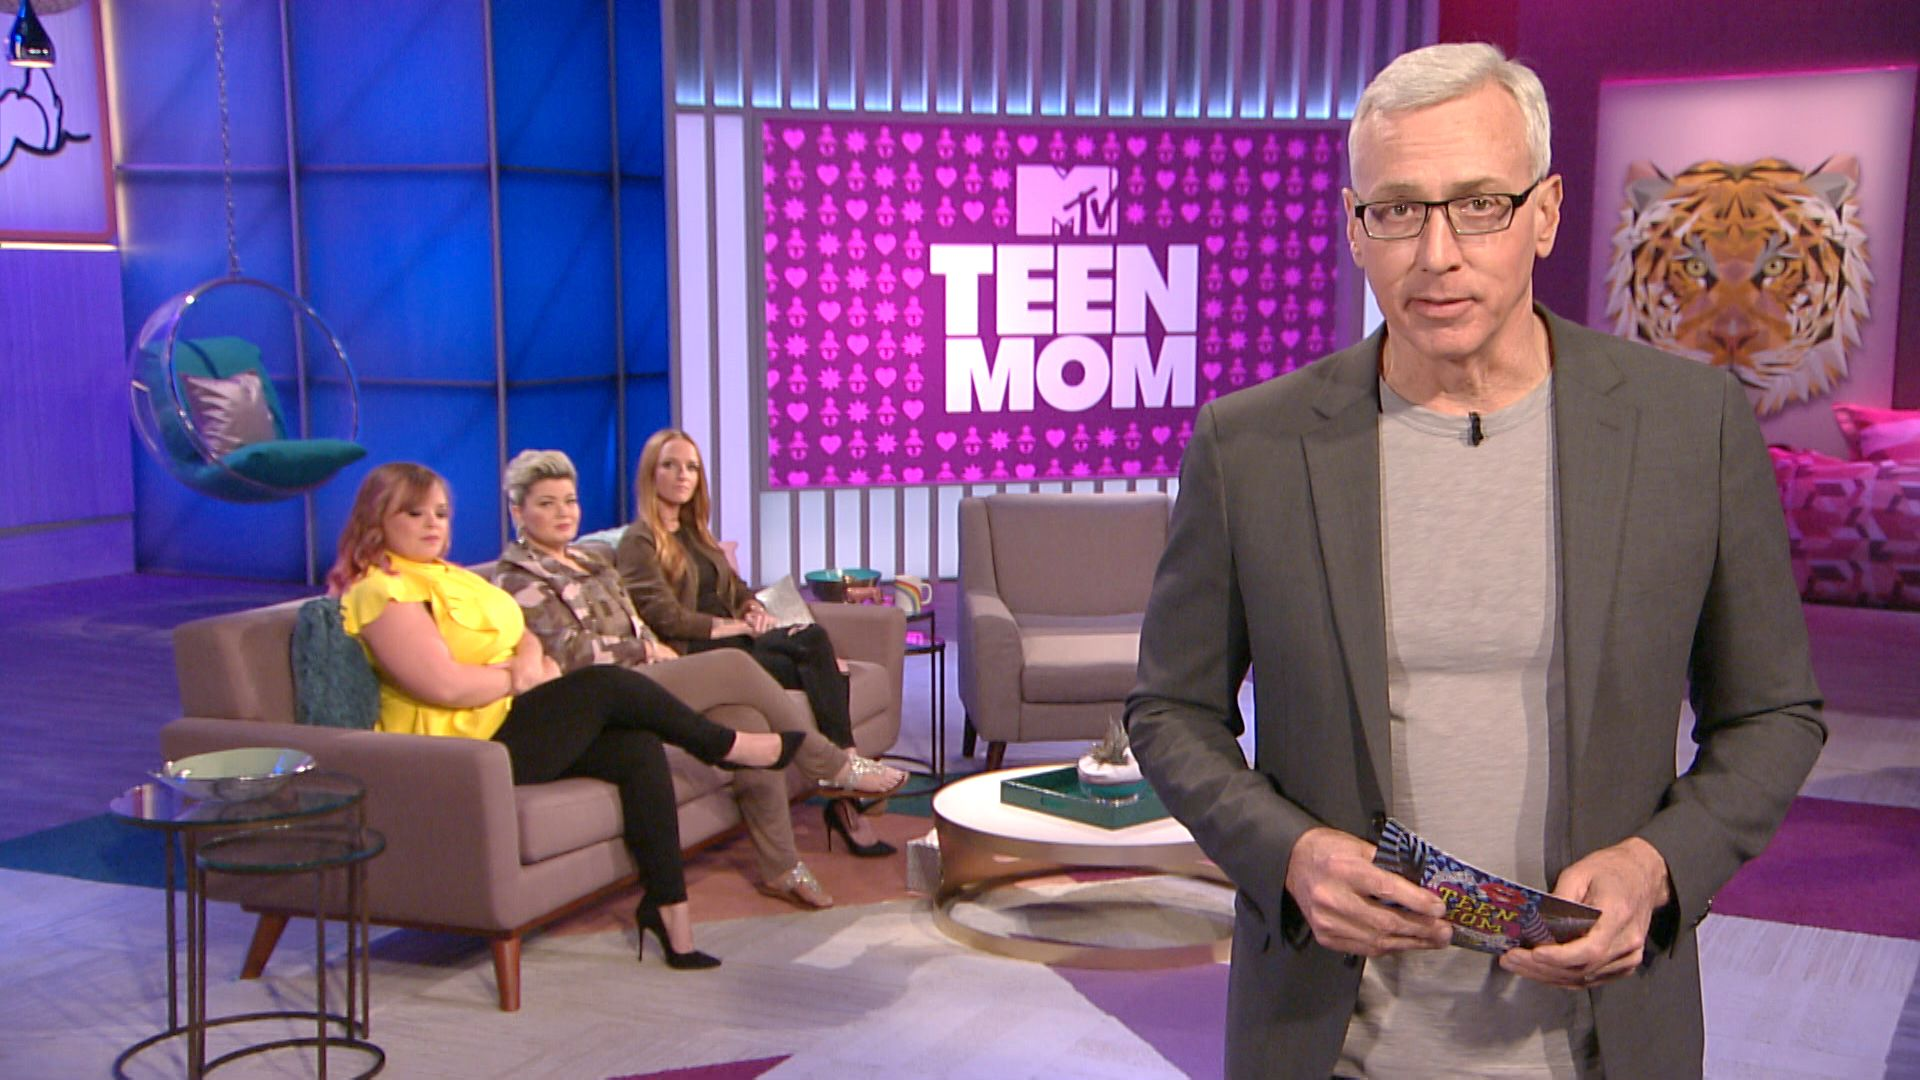 Teen mom watch the full